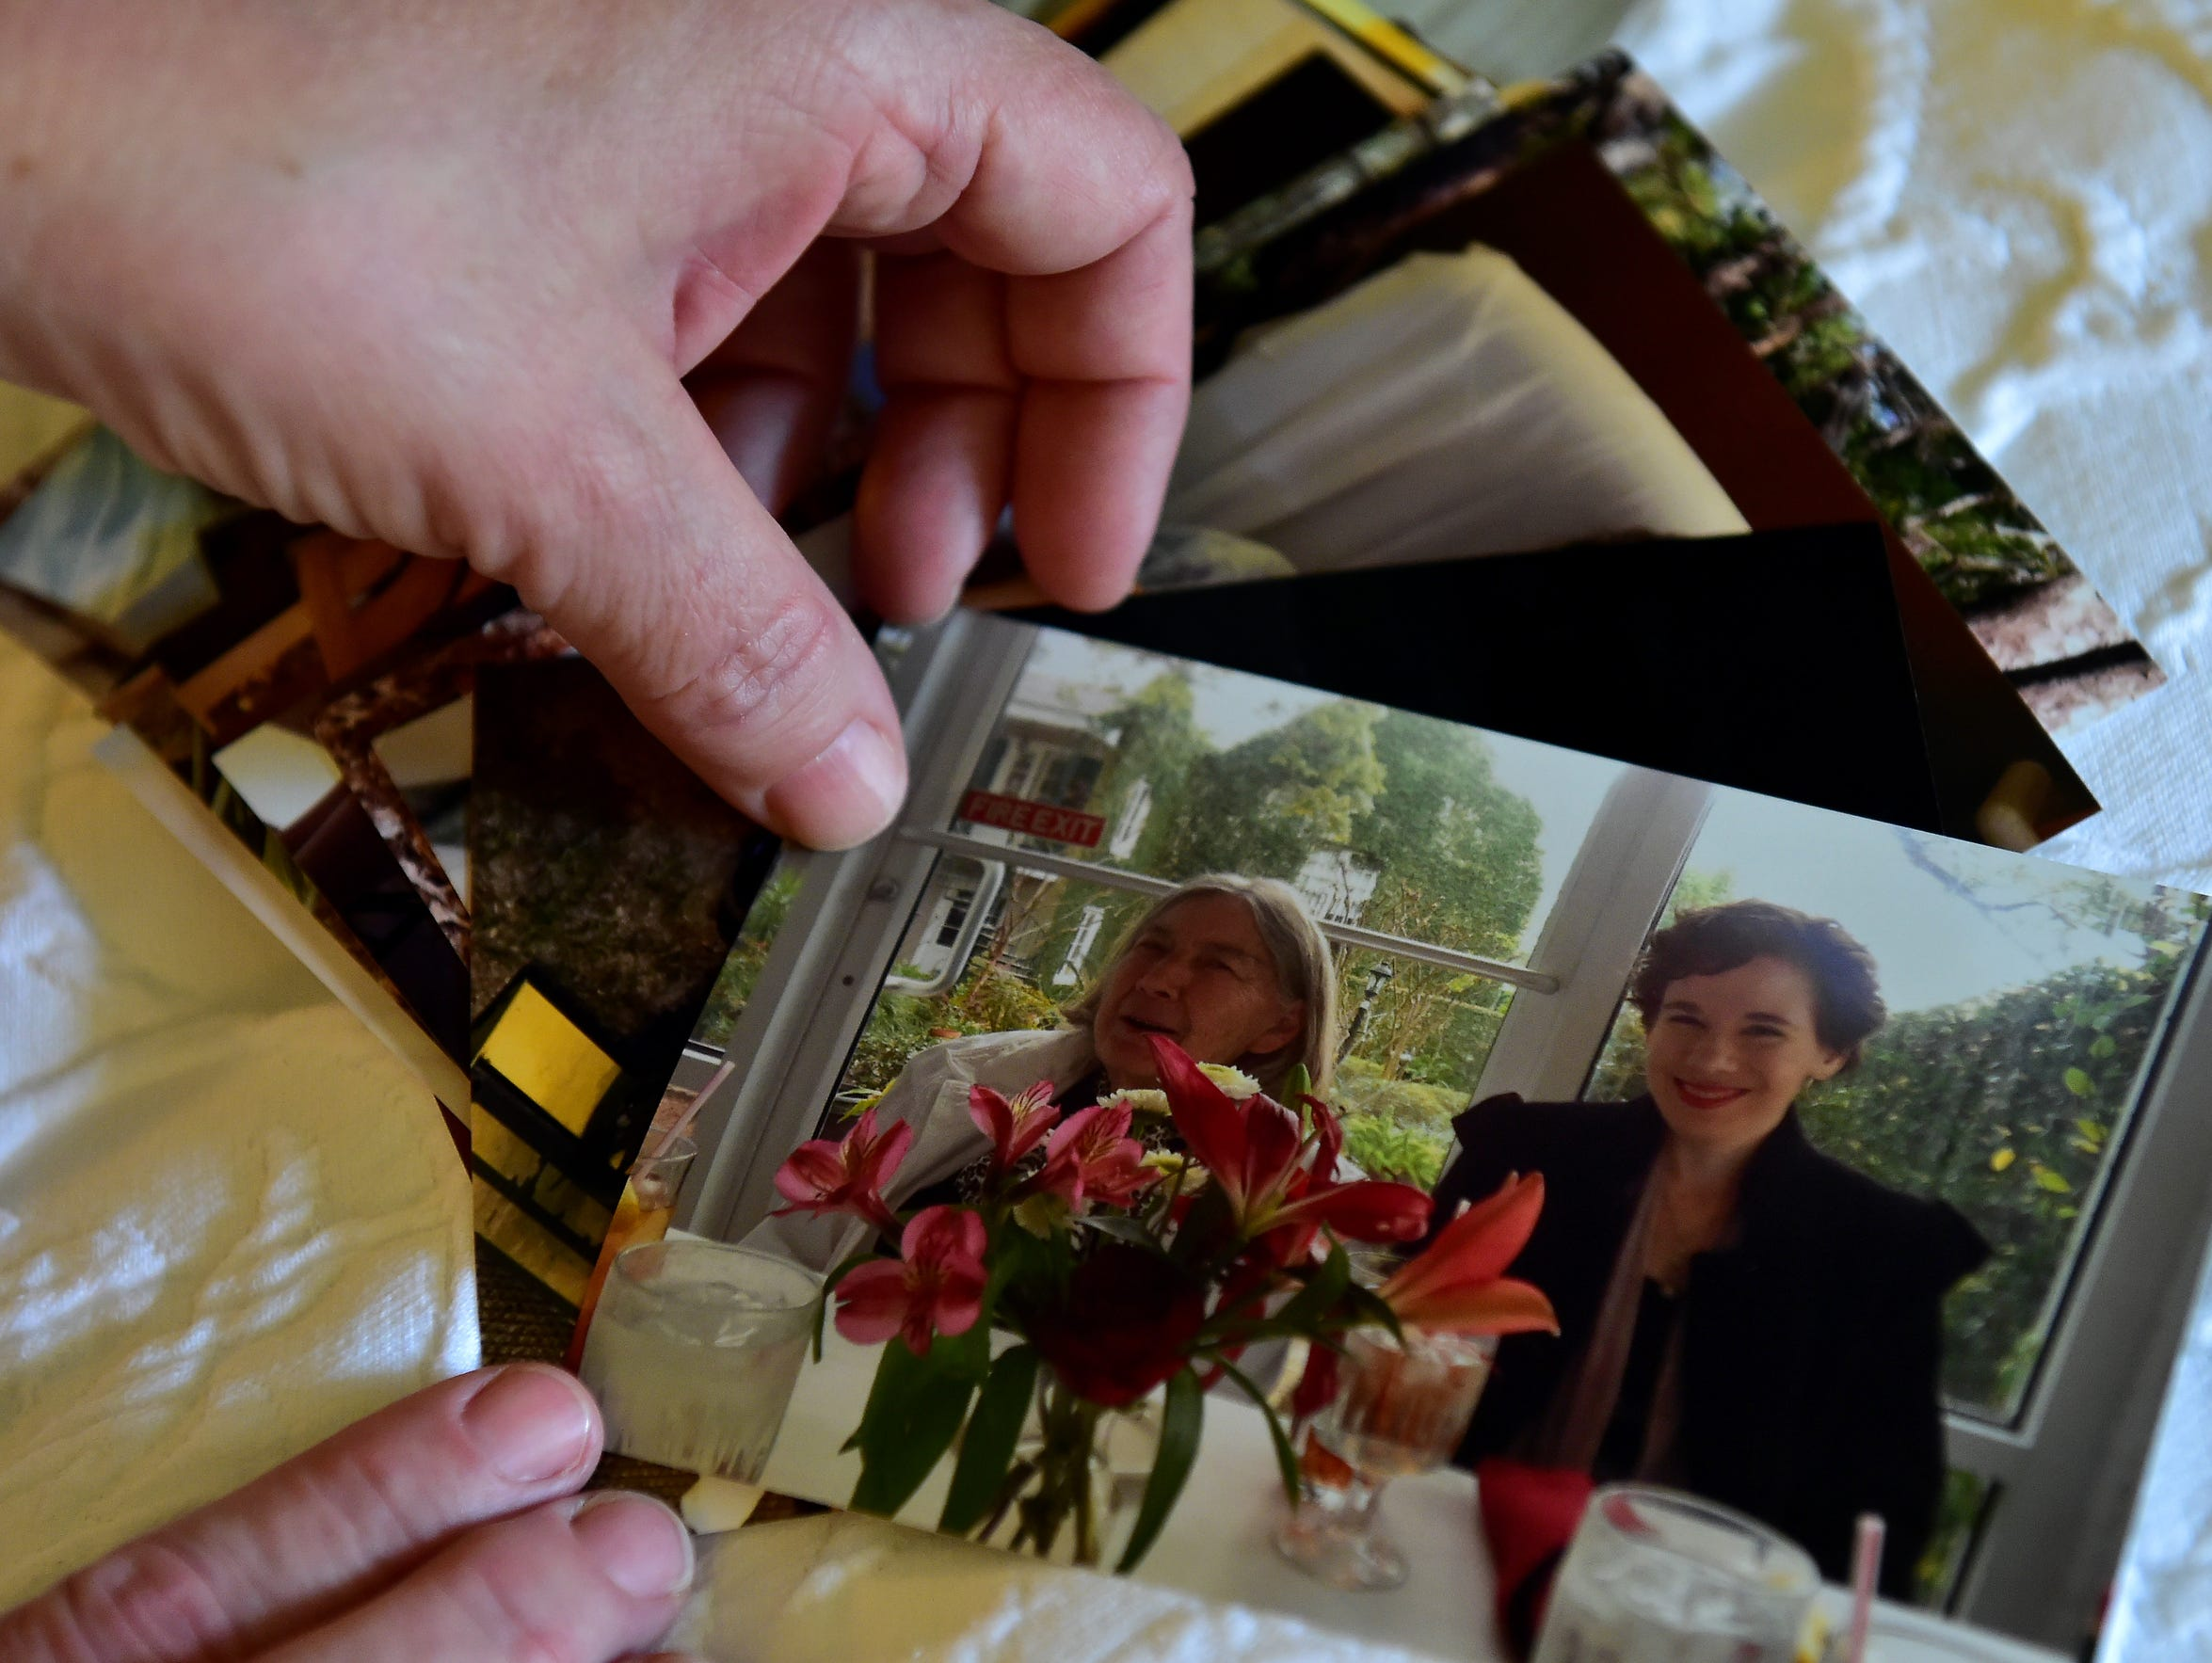 Lisa Conner looks at a photo of her daughter Brooke and her grandmother taken Feb. 24, 2015, just two weeks before a reaction to changes in medication landed her in the hospital.